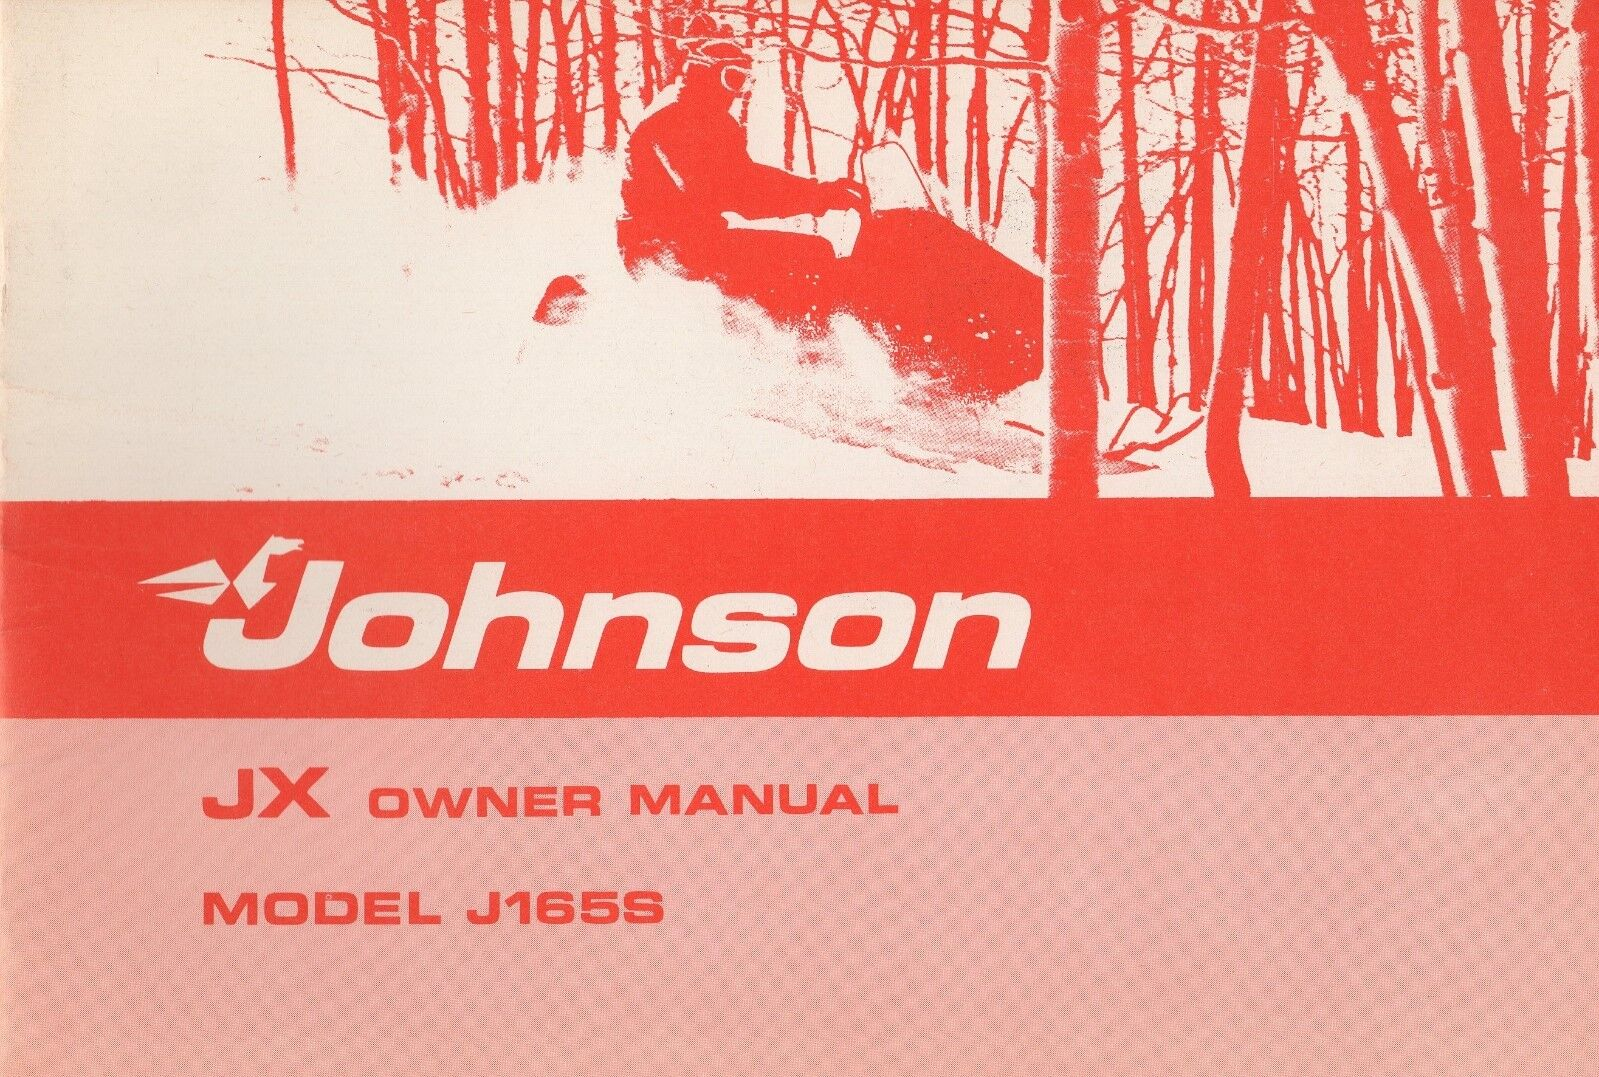 1975 JOHNSON SNOWMOBILE JX 50HP J165S  SNOWMOBILE OWNERS MANUAL 263909 (458)